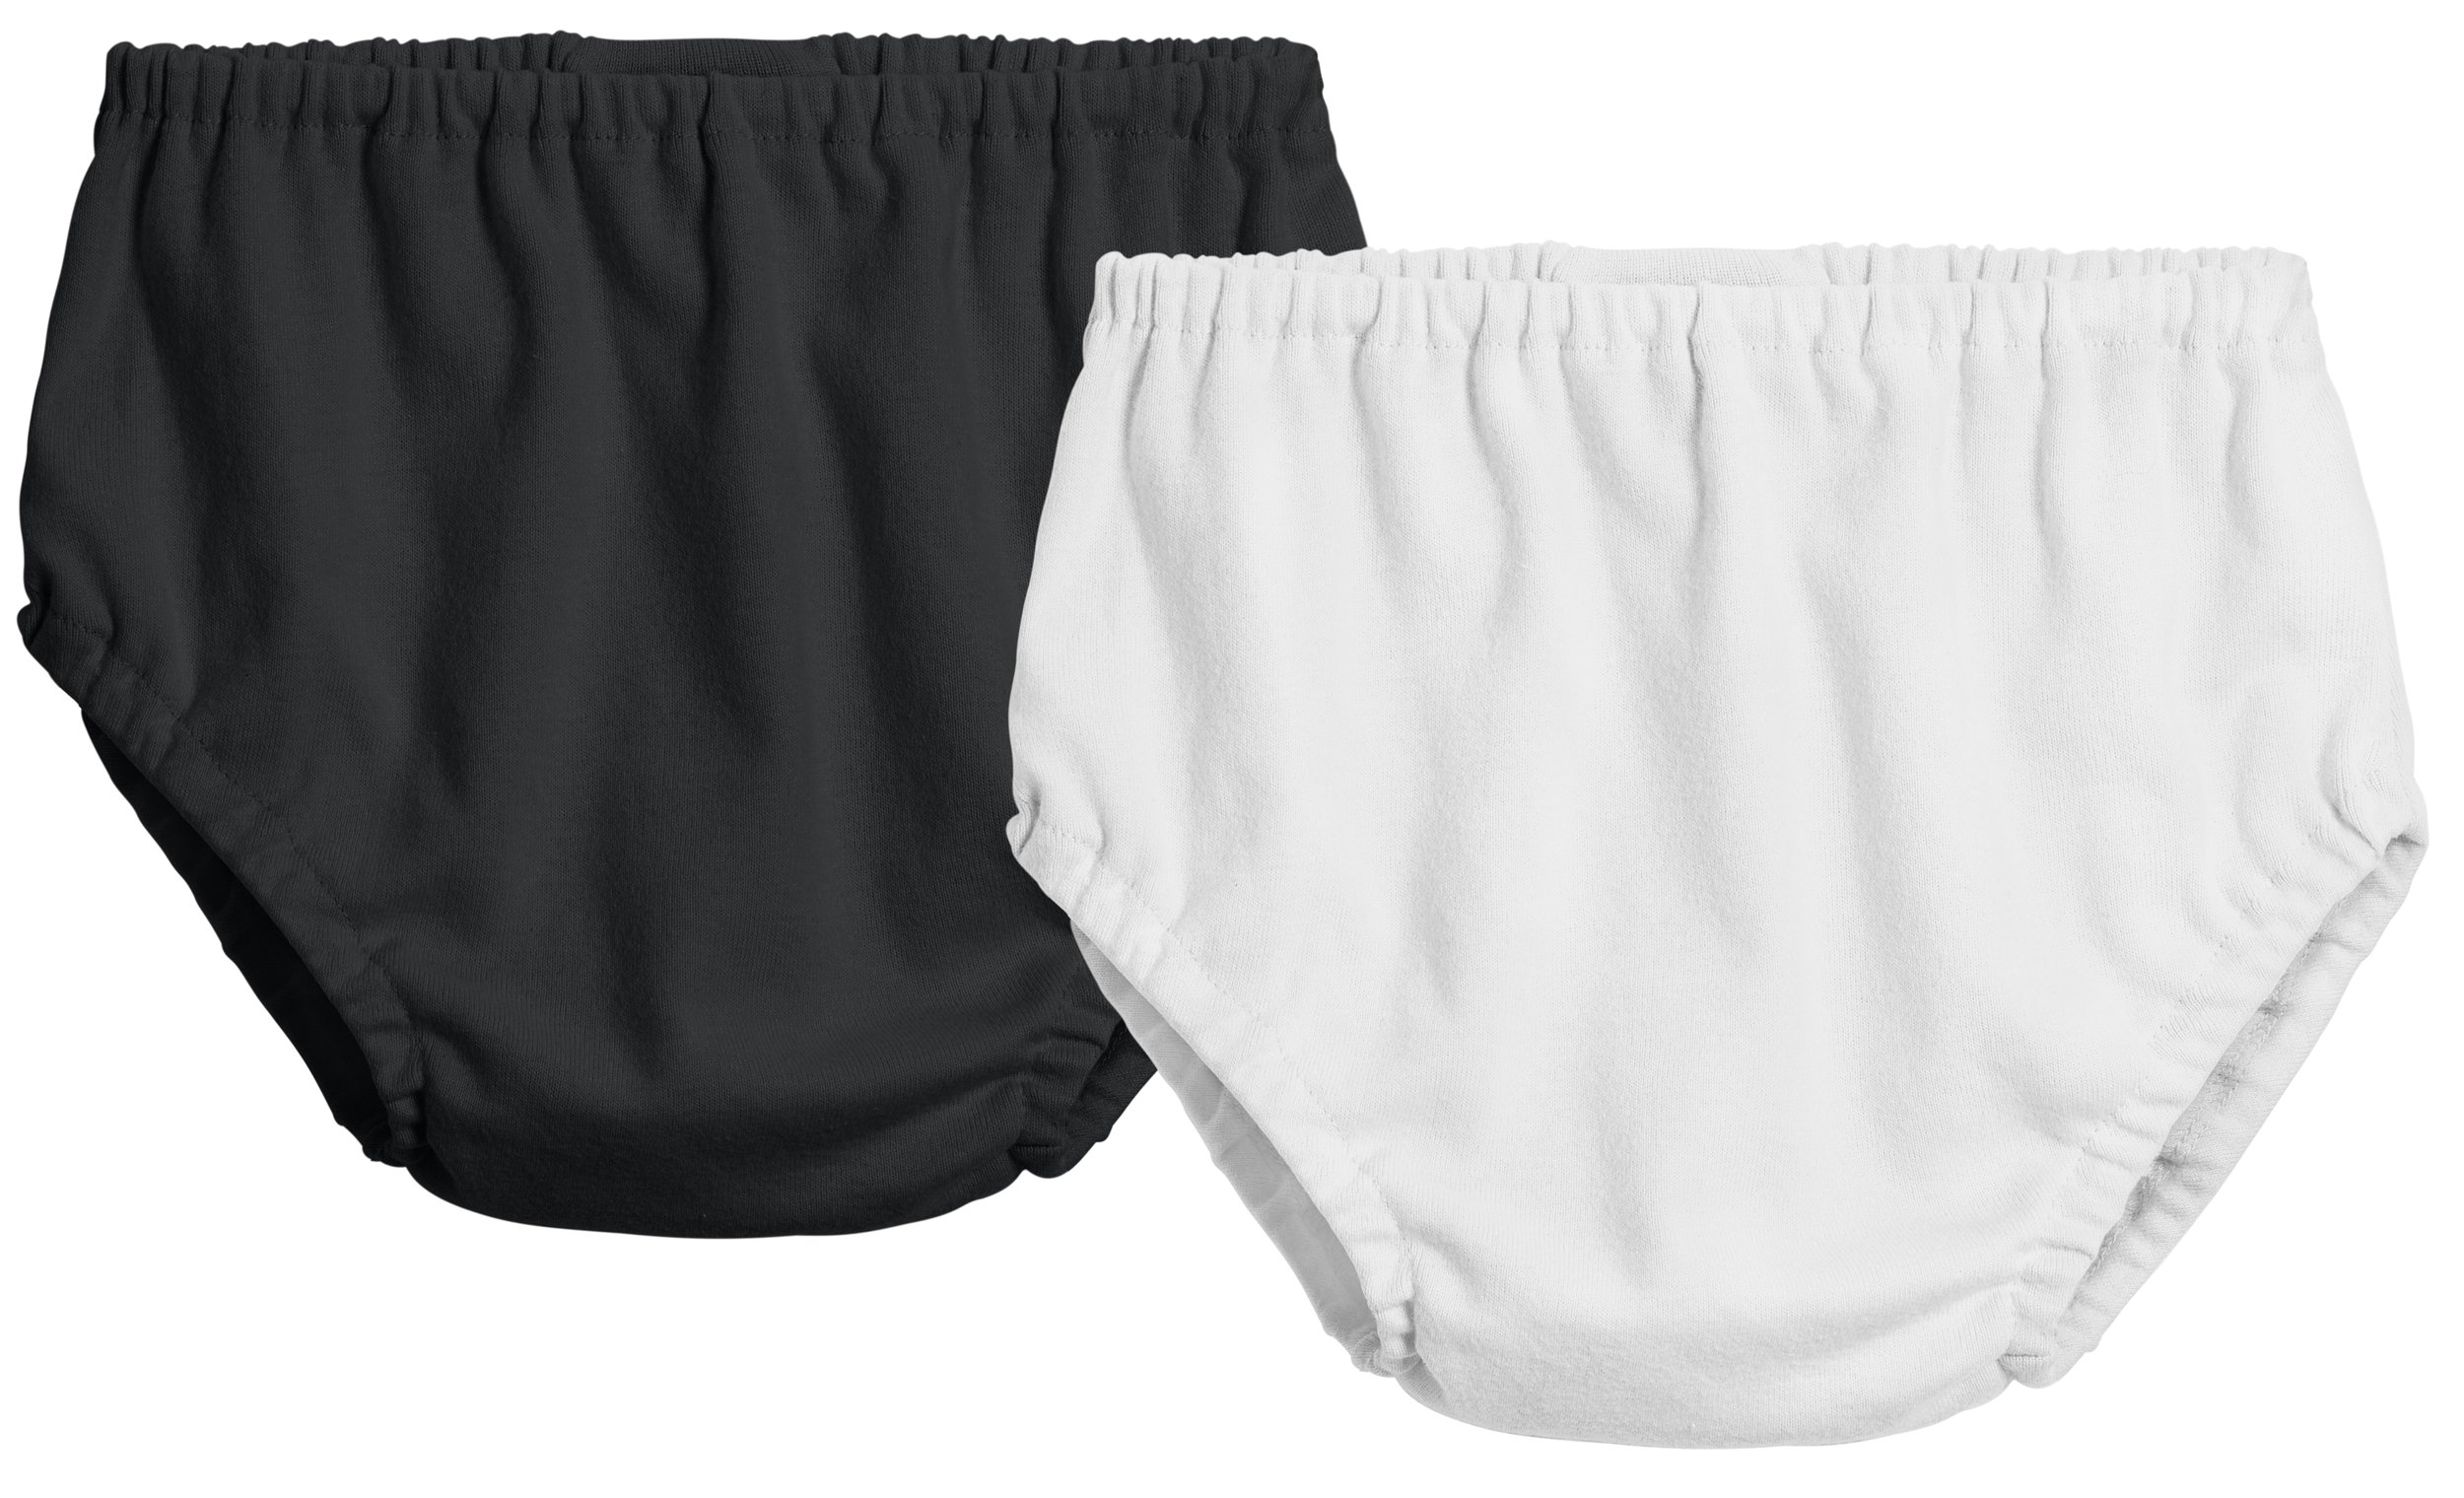 City Threads 2-Pack Baby Girls' and Baby Boys' Unisex Diaper Covers Bloomers Soft Cotton, Black/White, 0/3 m